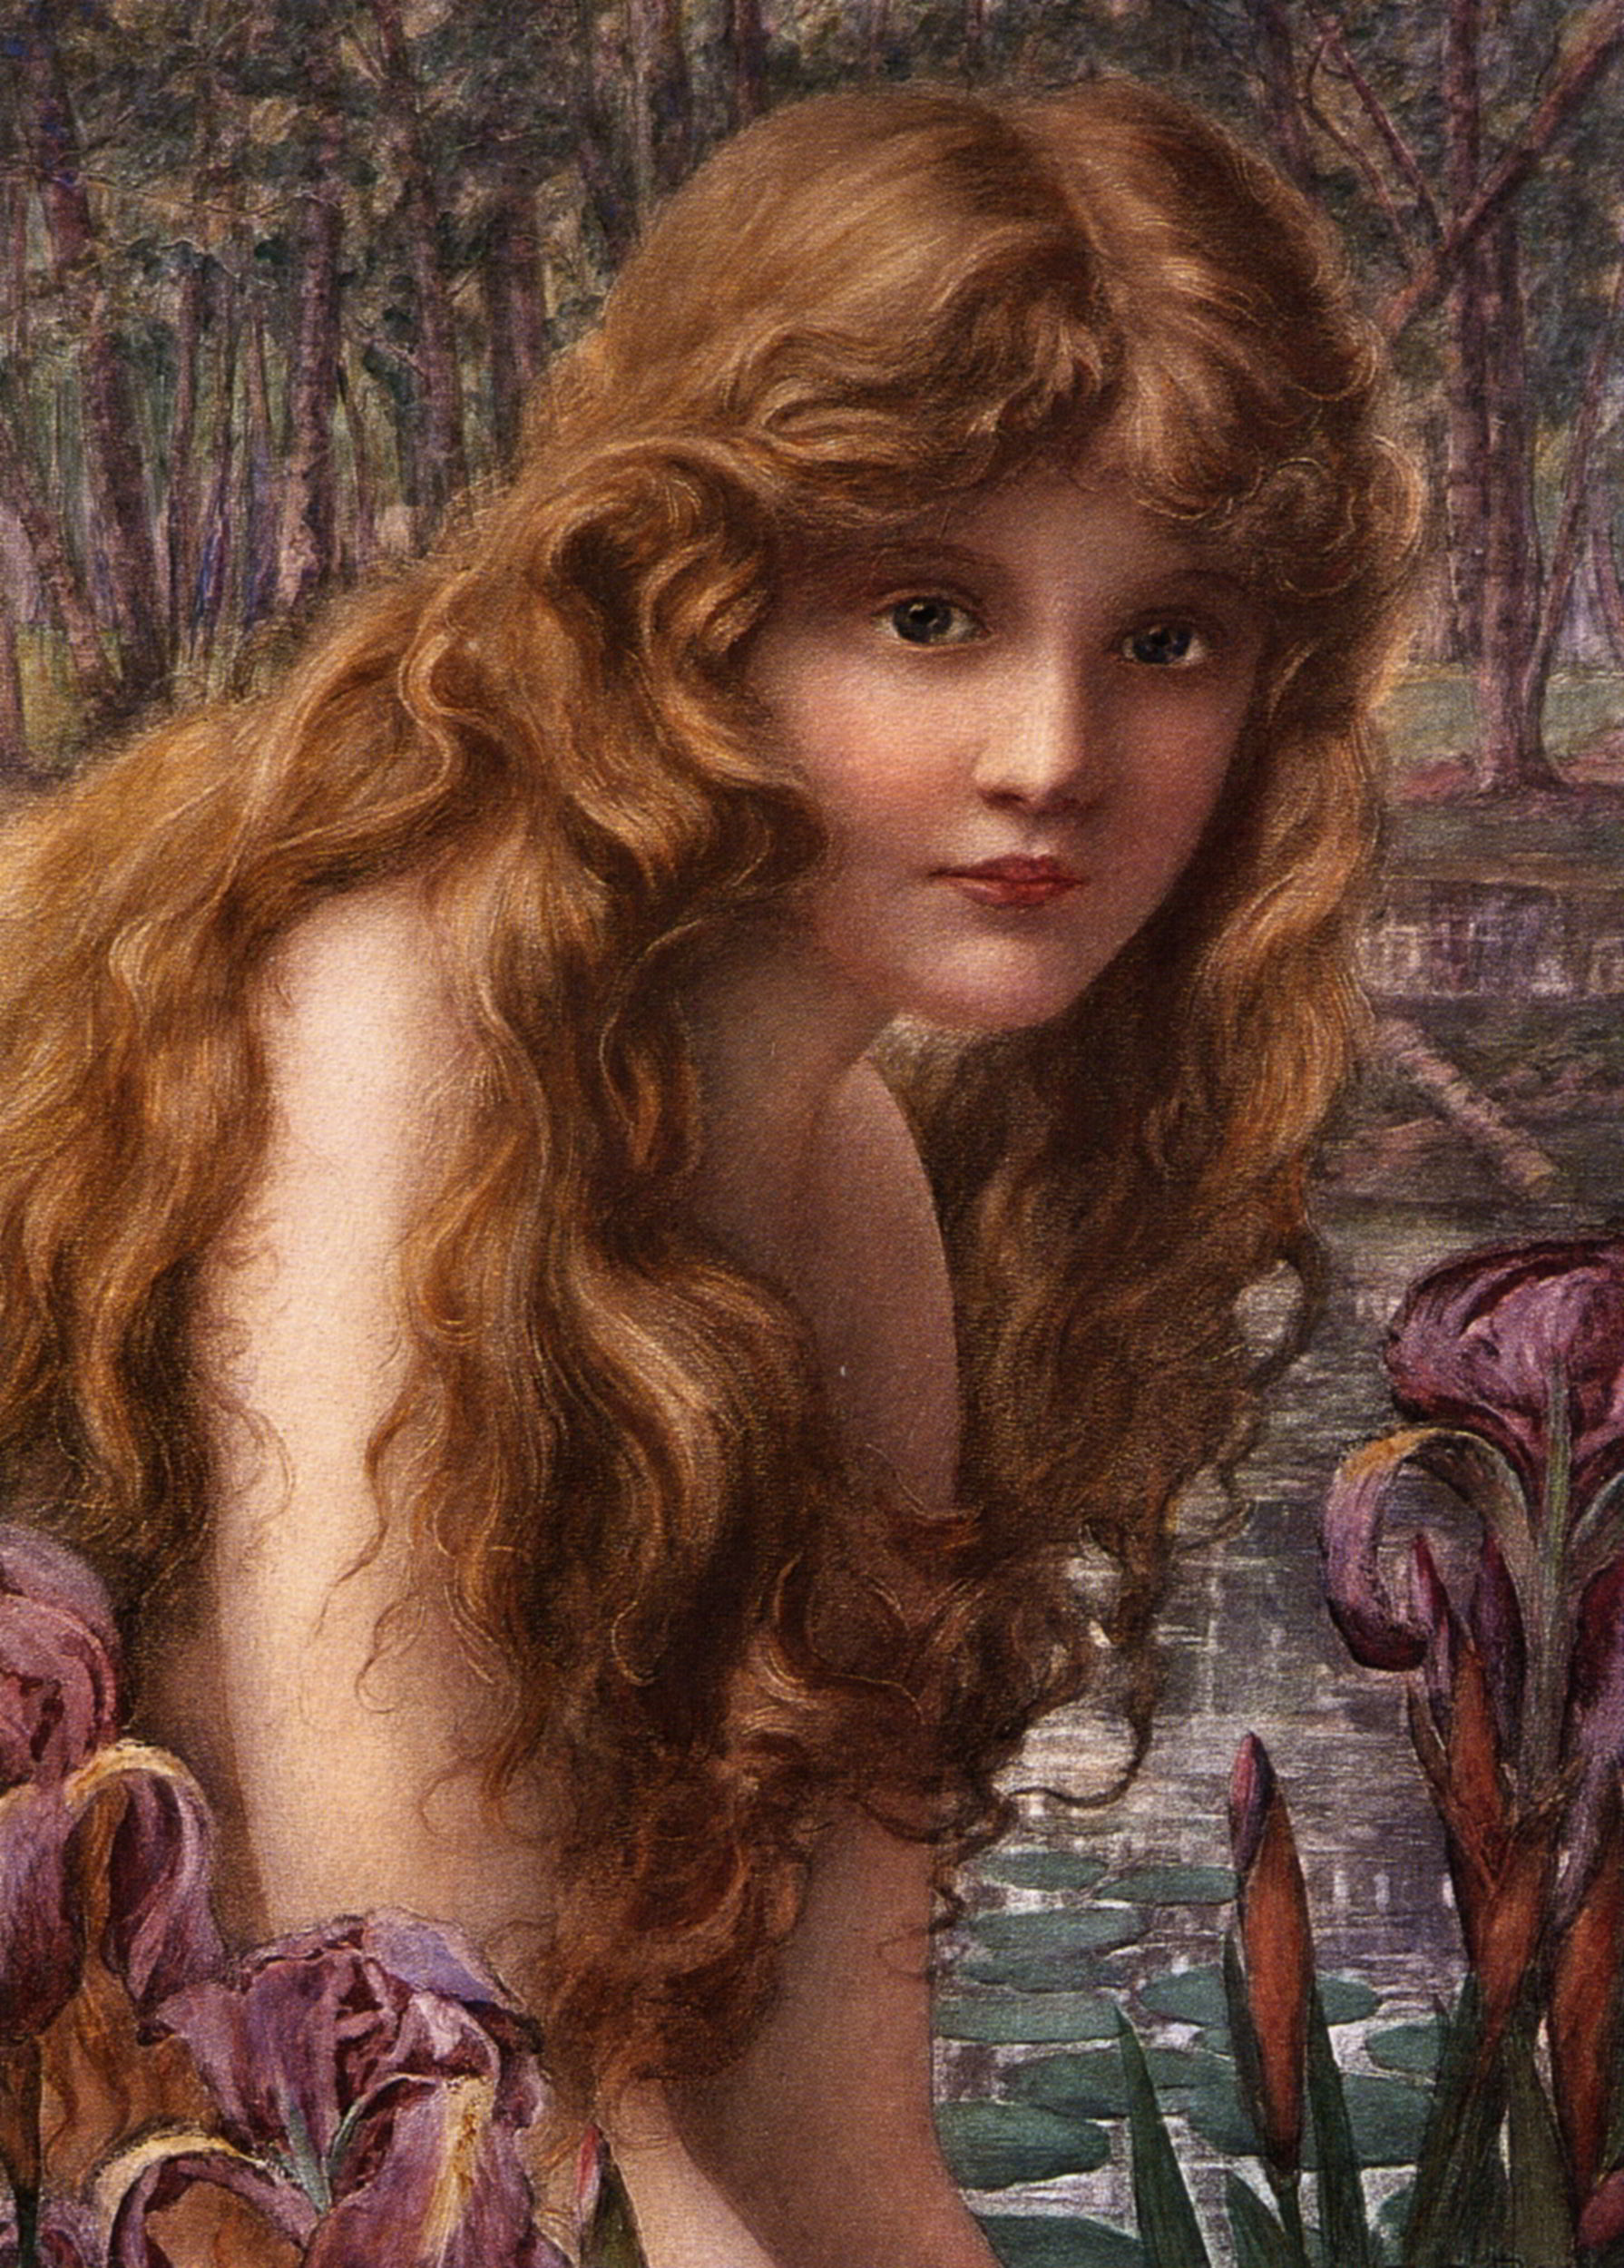 Herny Ryland (1856-1924), The water nymph [http://artpaintingartist.org]